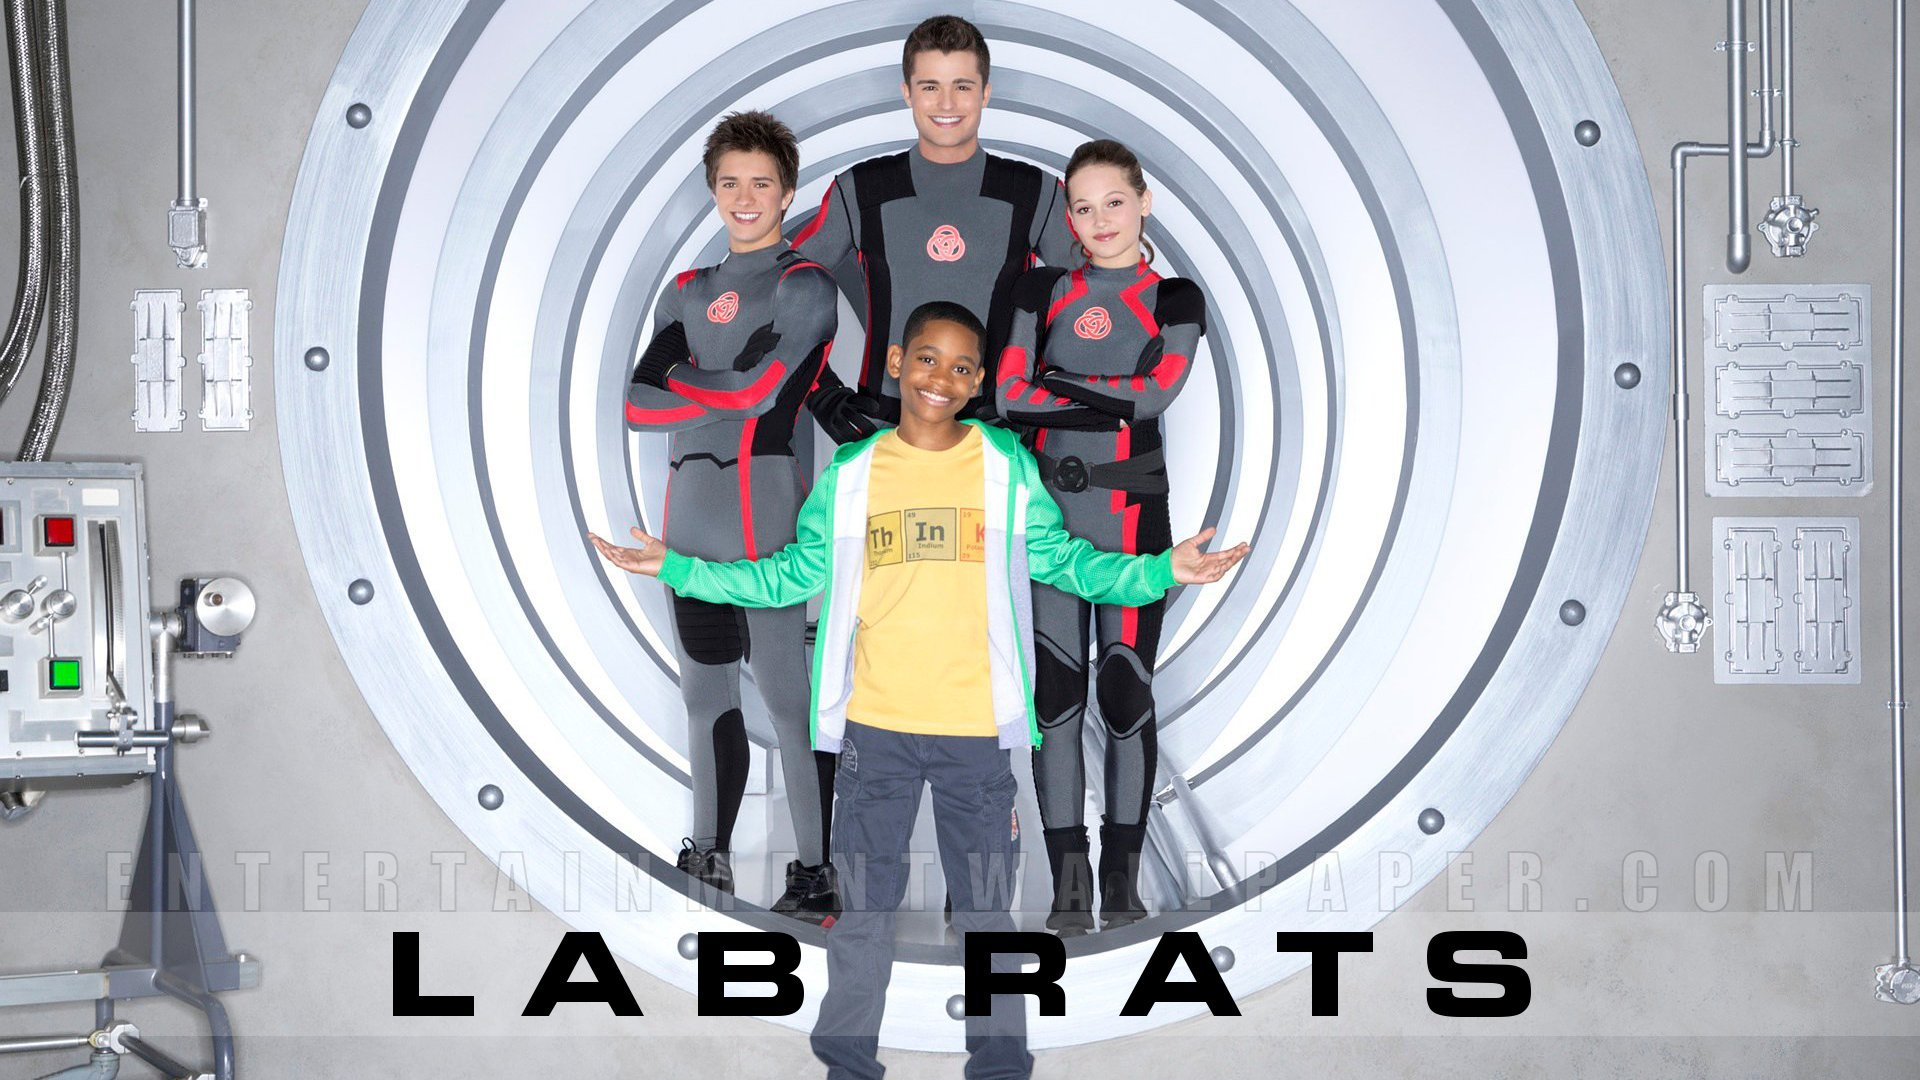 lab rats wallpaper 20045262 size 1920x1080 more lab rats wallpaper 1920x1080